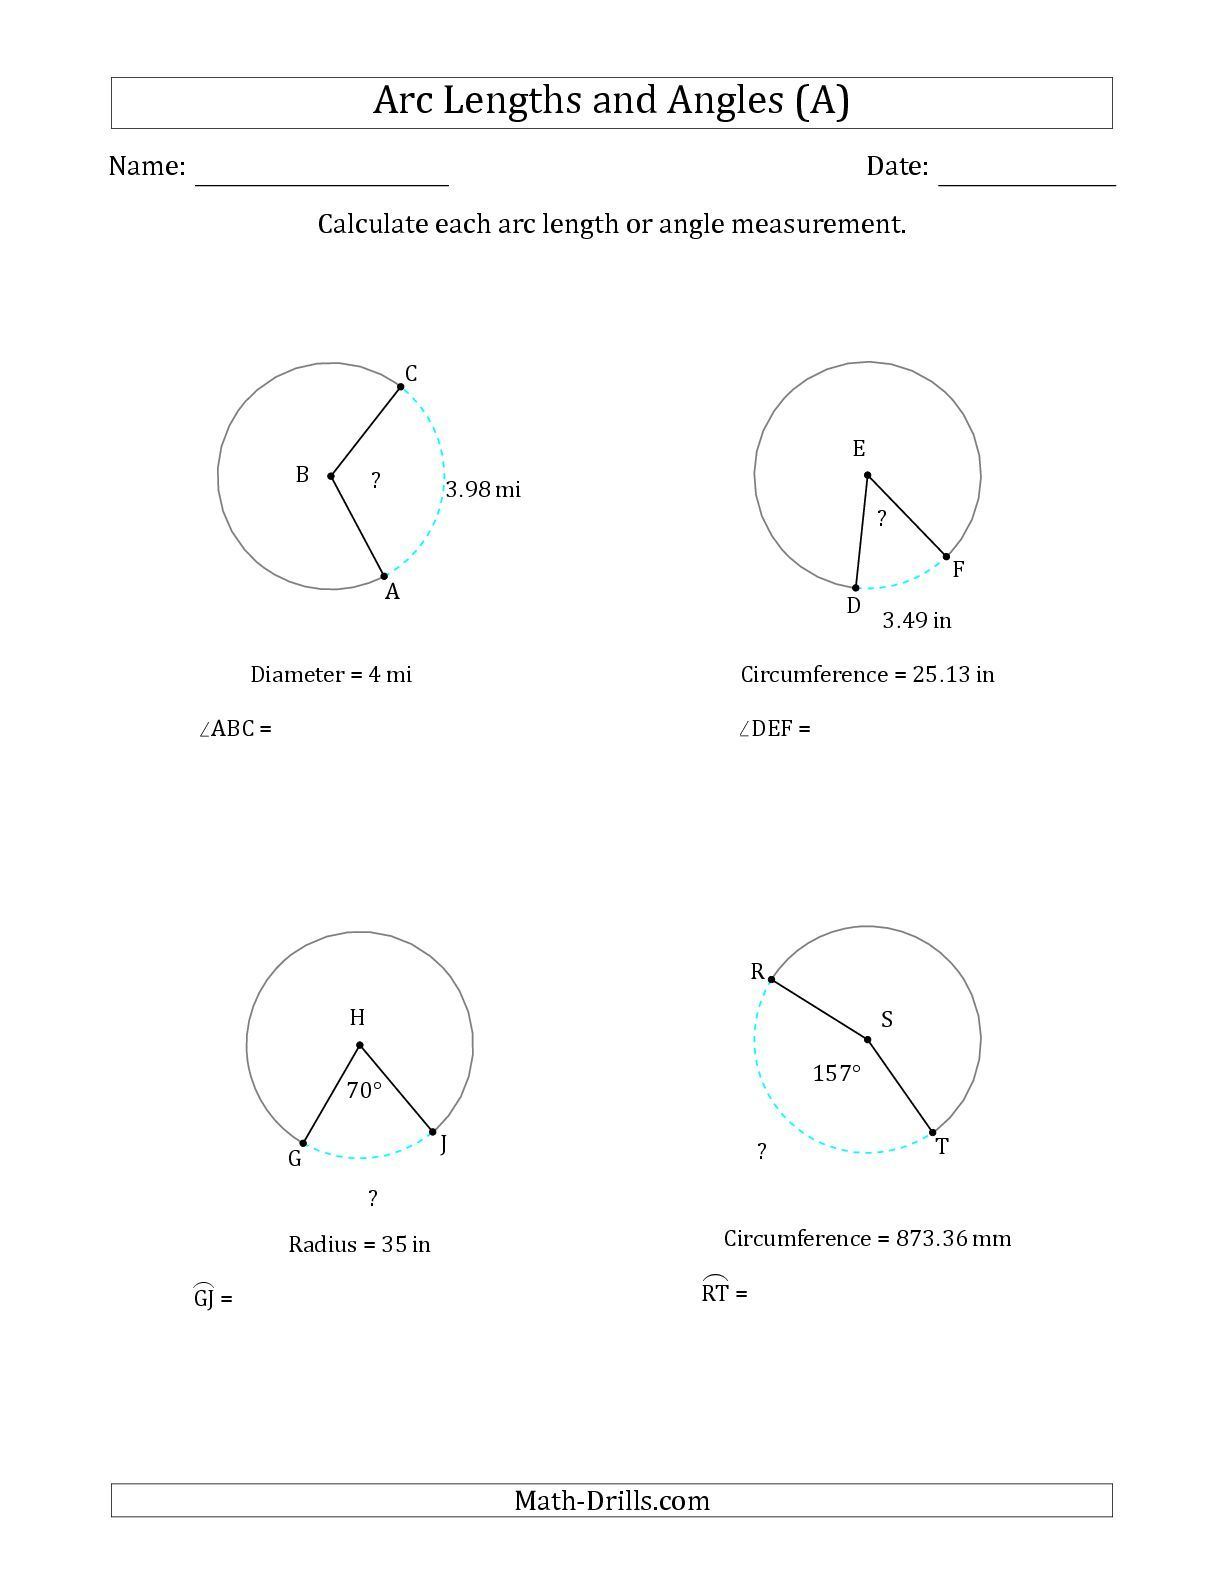 The Calculating Arc Length Or Angle From Circumference Radius Or Diameter A Math Worksheet